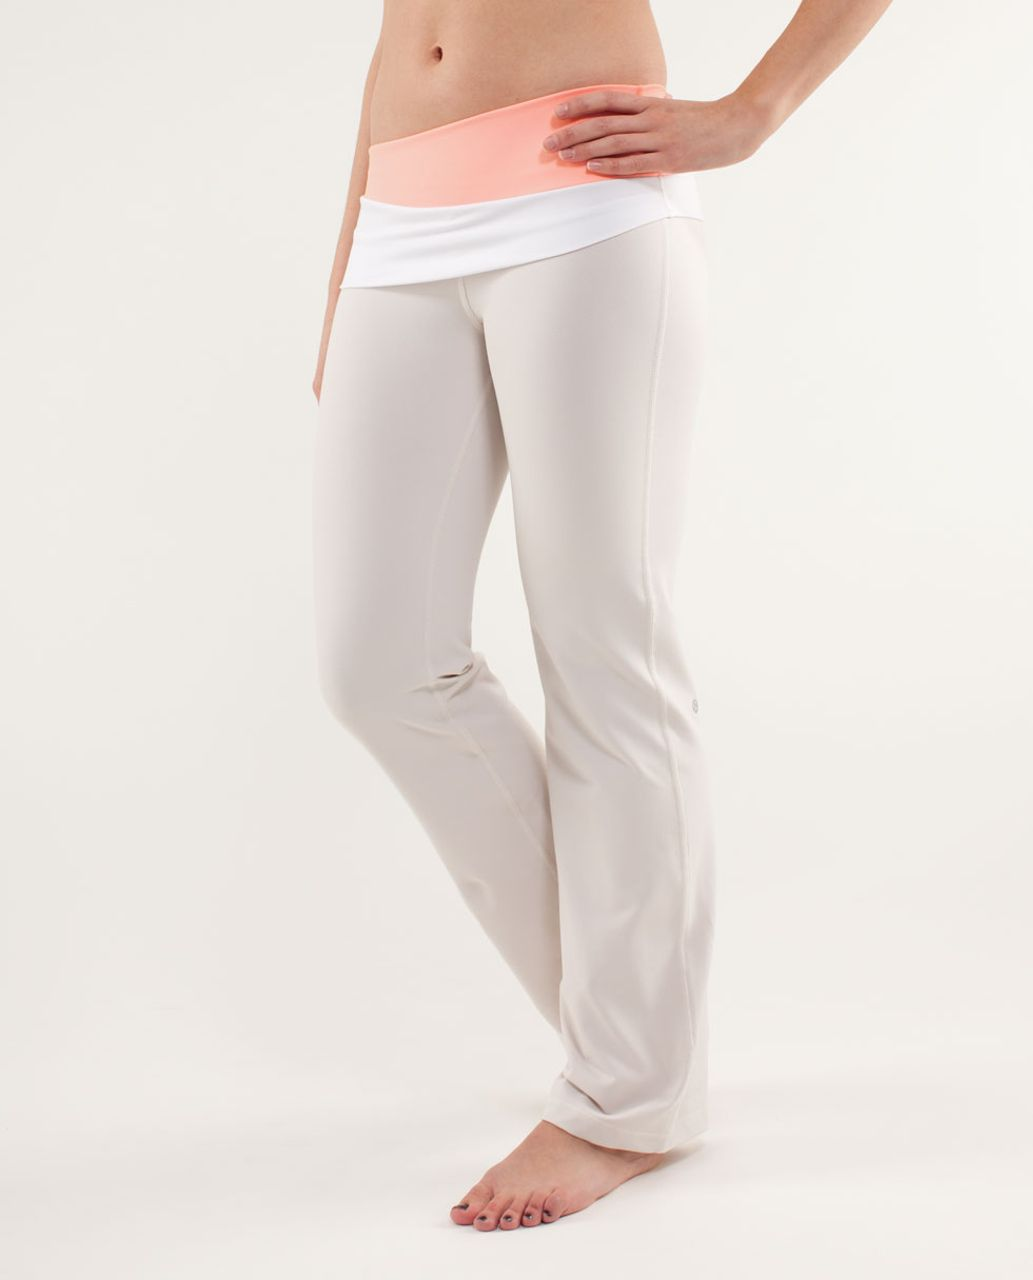 Lululemon Astro Pant (Regular) - Dune / Bleached Coral / White